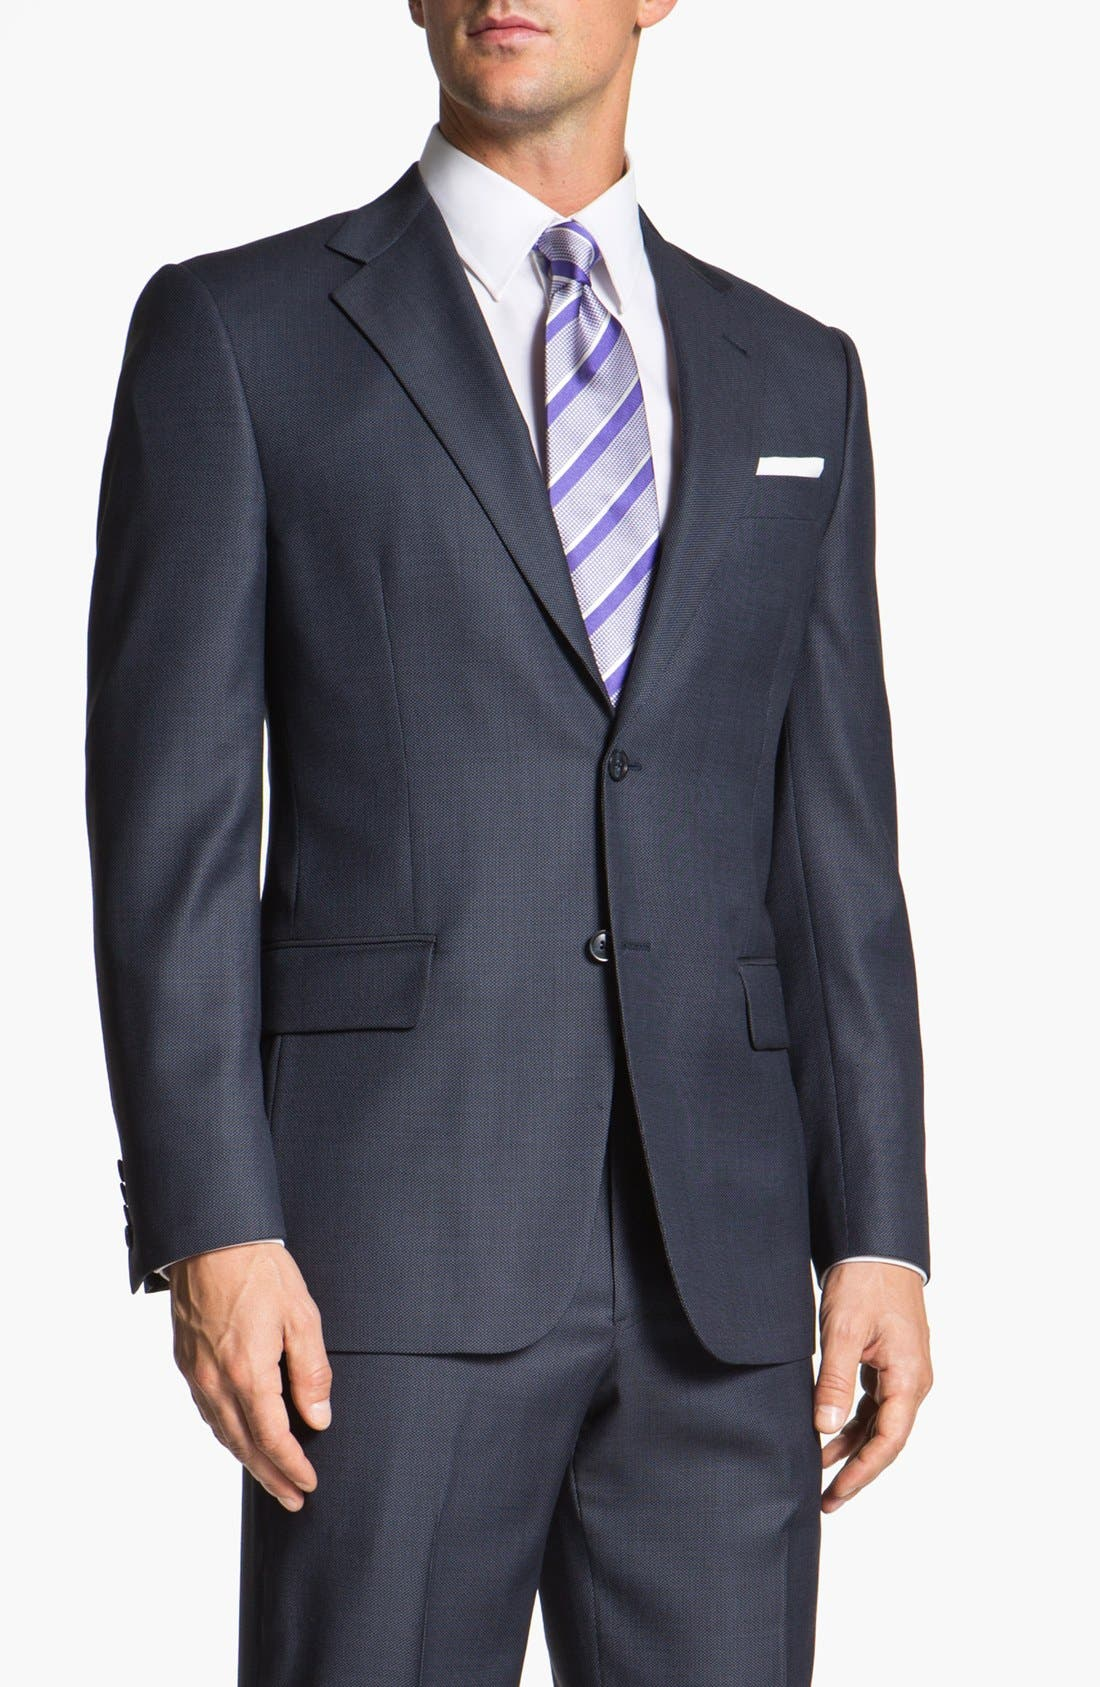 Alternate Image 1 Selected - Joseph Abboud 'Signature Silver' Wool Suit (Online Only)